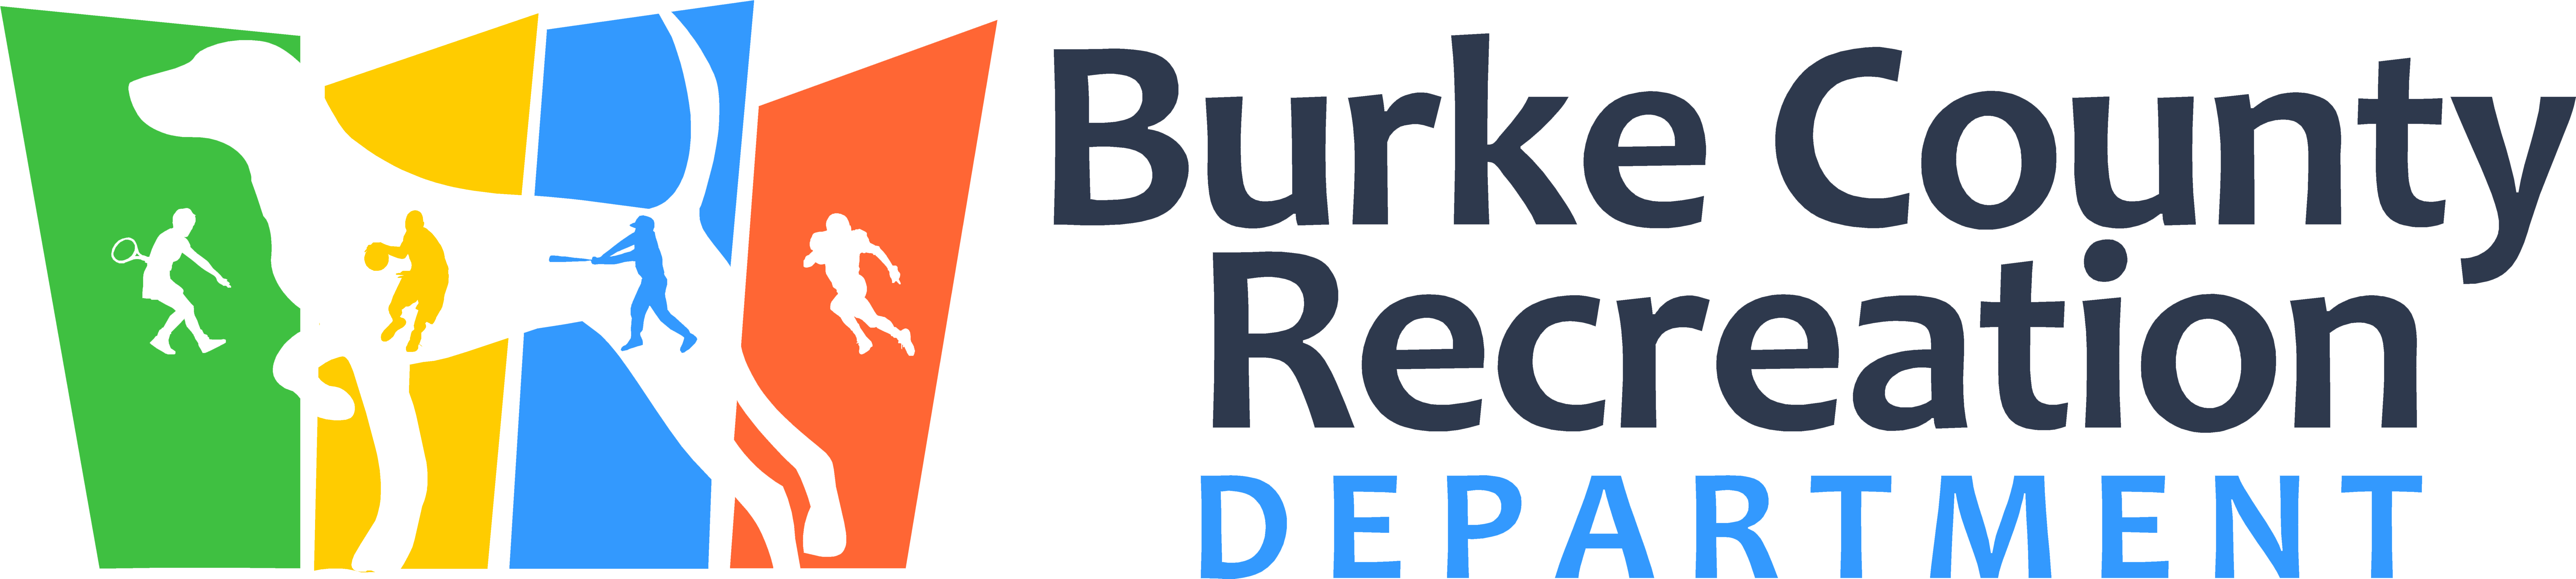 Burke County Recreation Department